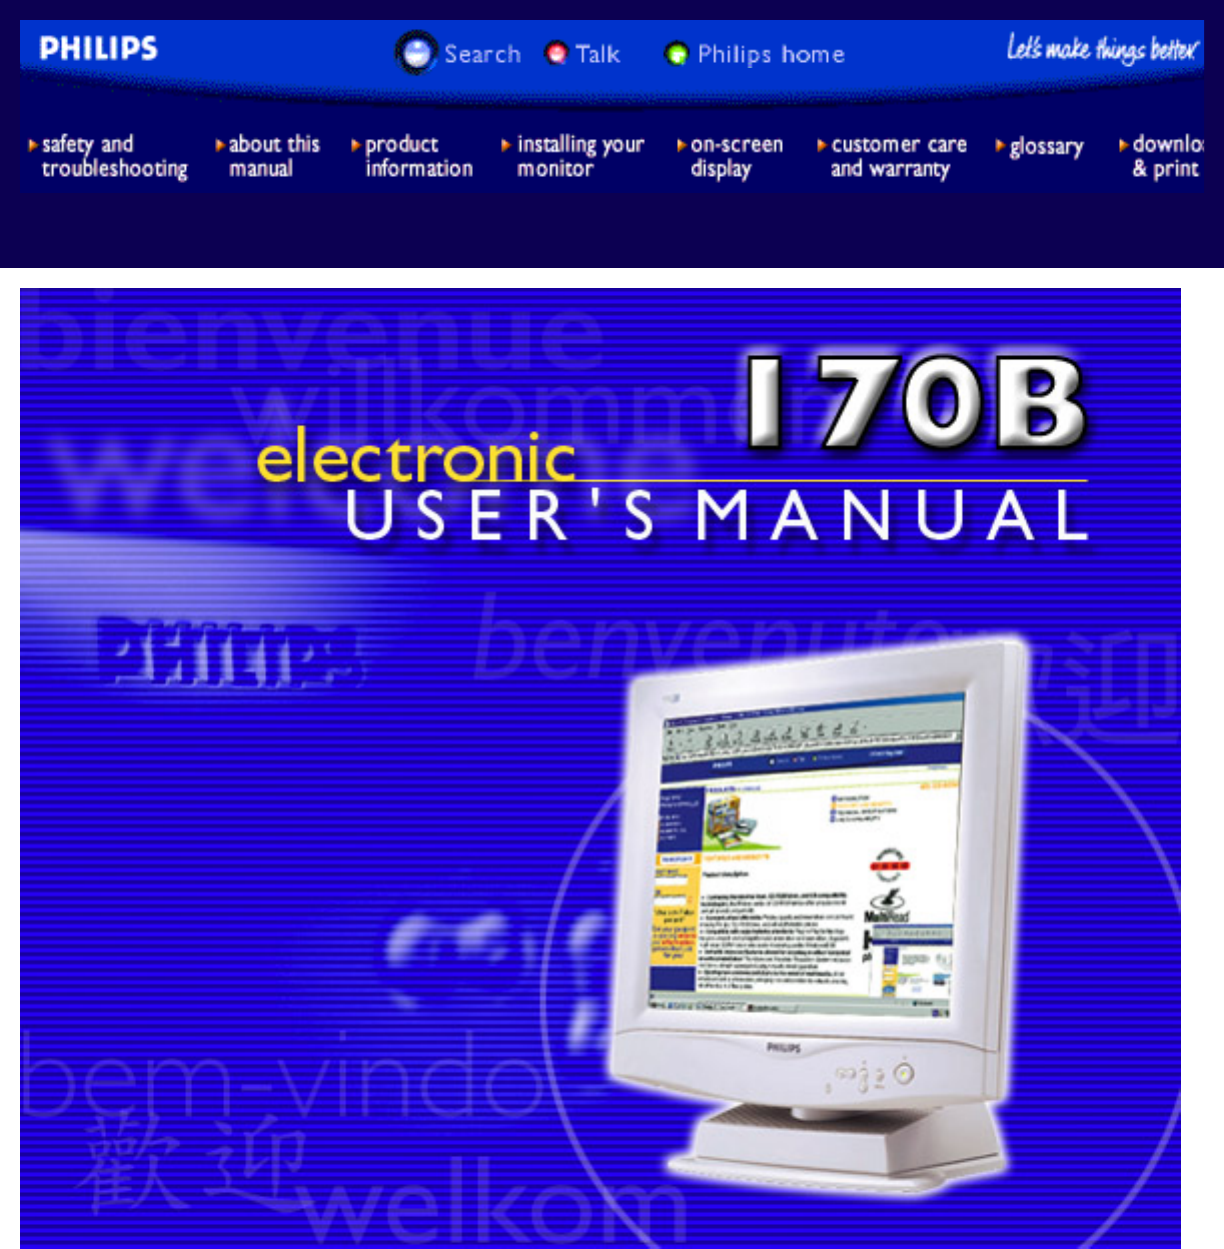 philips computer monitor 170b user guide manualsonline com rh office manualsonline com Philips Computer Monitors Philips Fetal Monitor Supplies